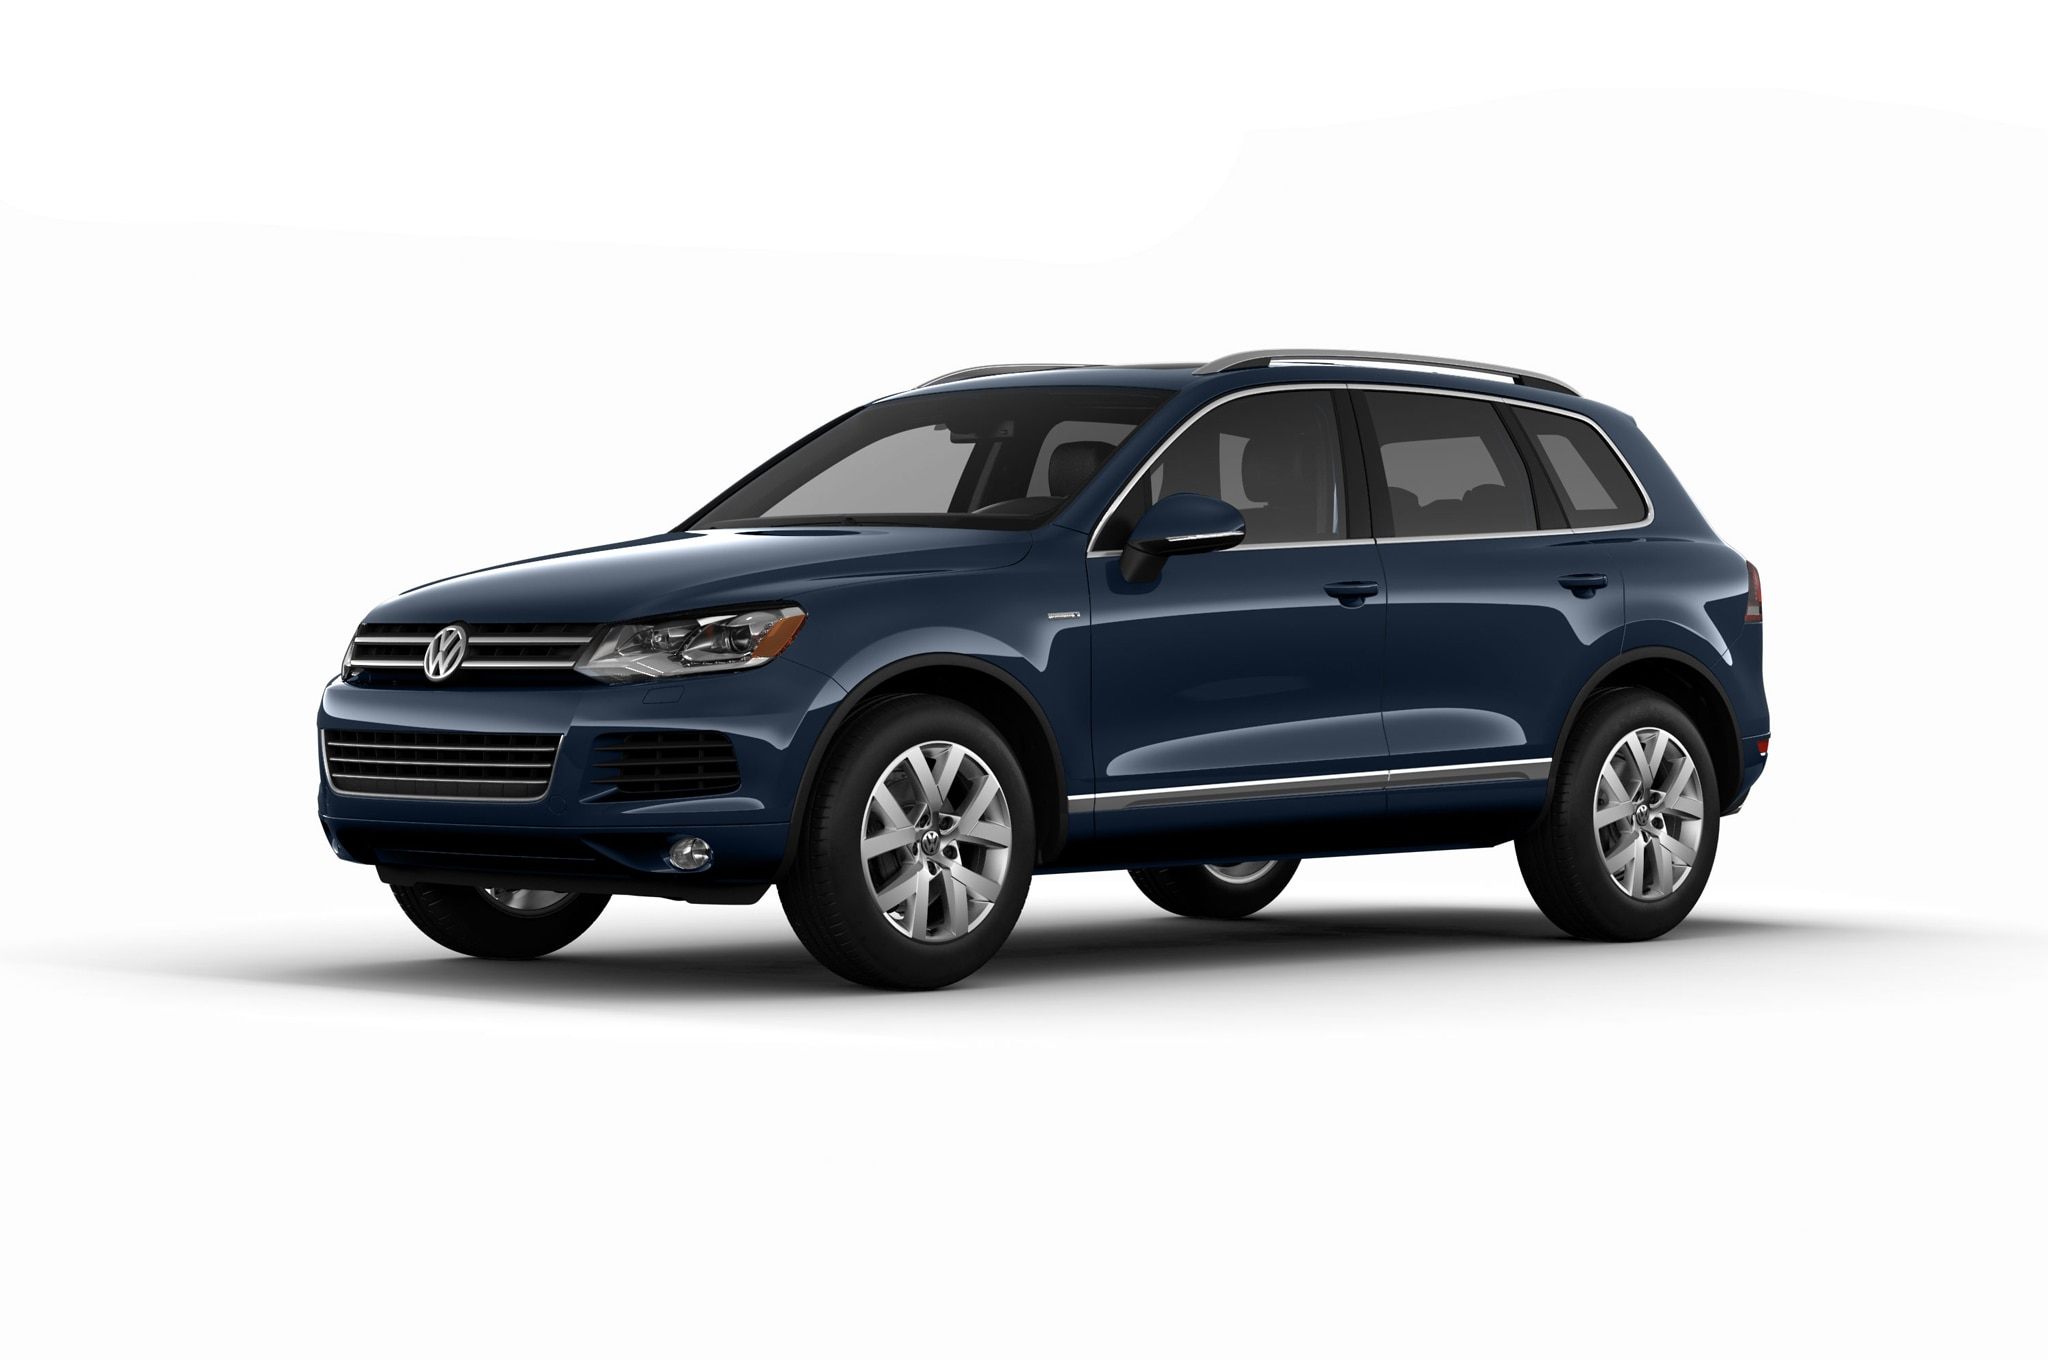 TouaregX Special Edition Front Three Quarter